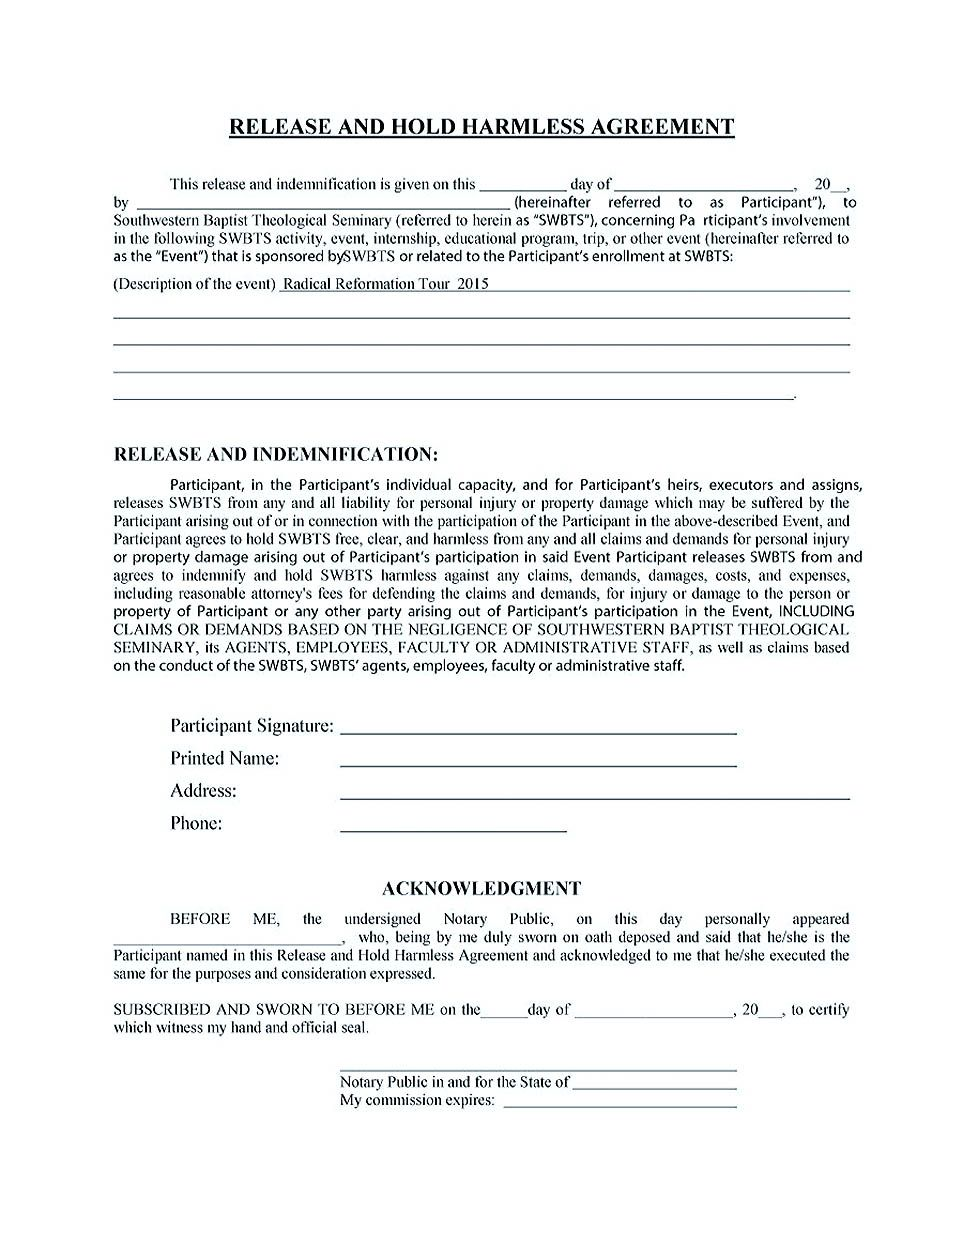 Hold Harmless Agreement Pdf  Making Hold Harmless Agreement